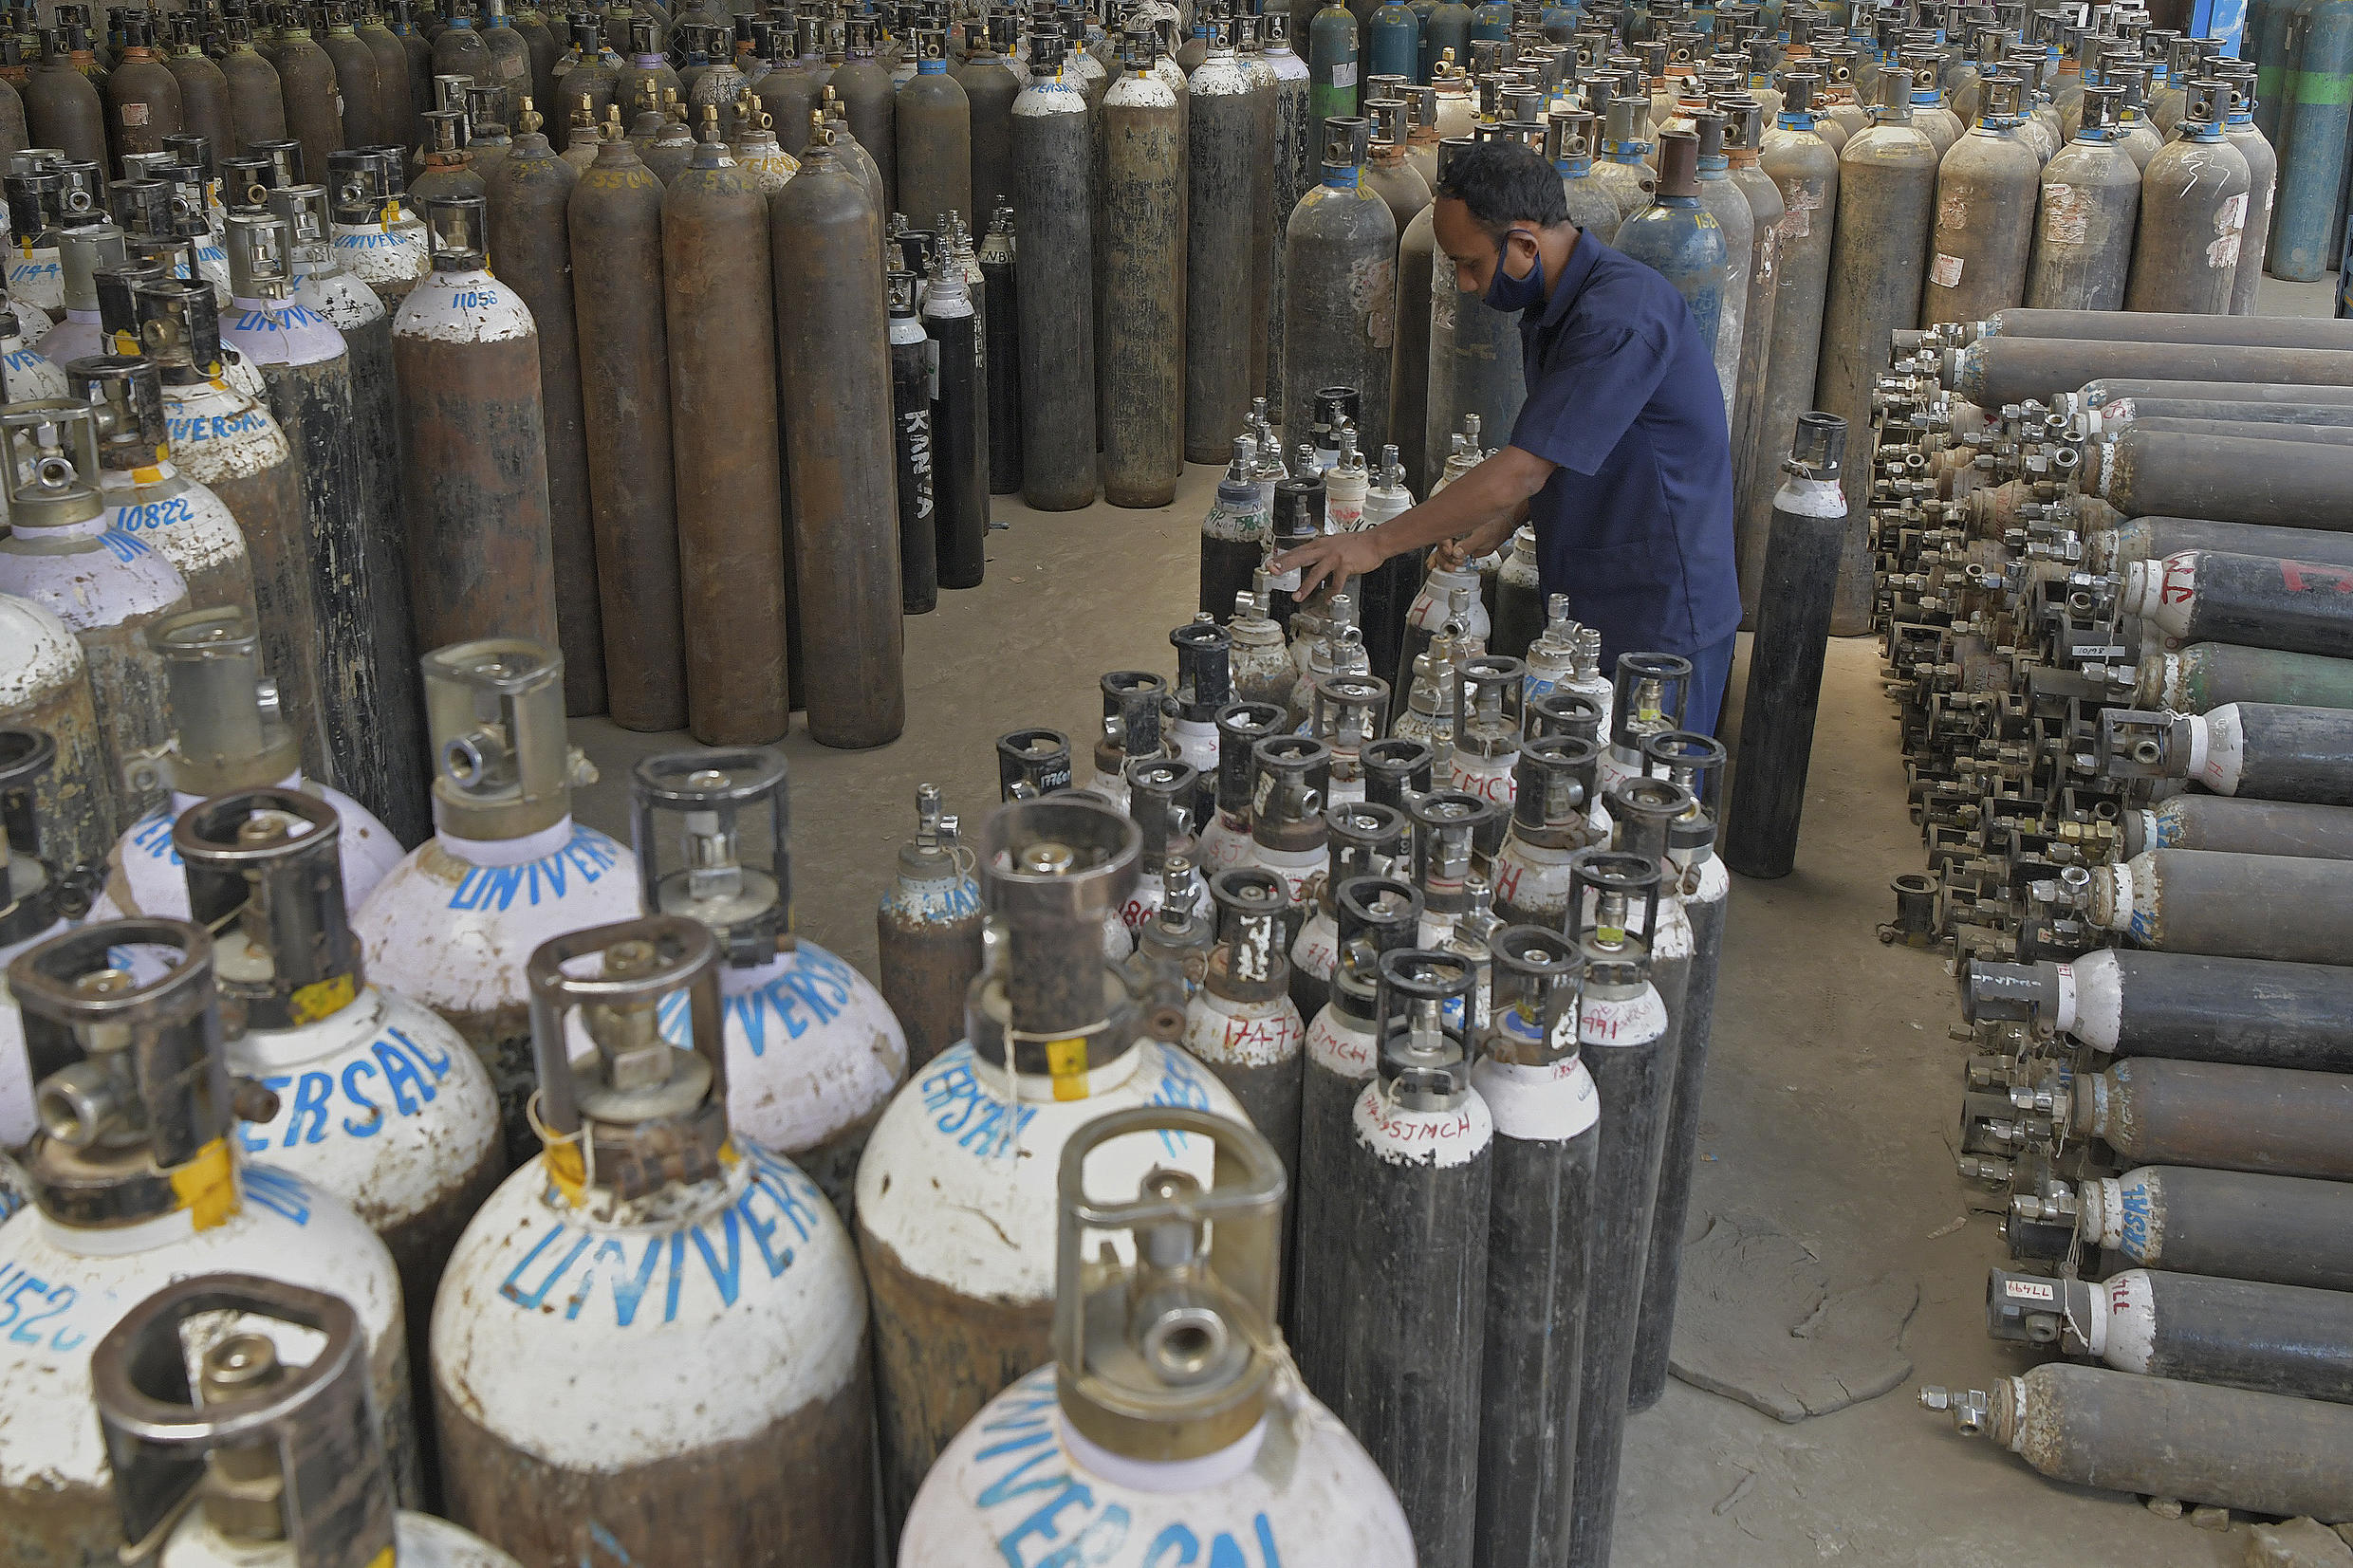 Many hospitals in India are running short of oxygen cylinders used to supply ventilators for Covid-19 patients